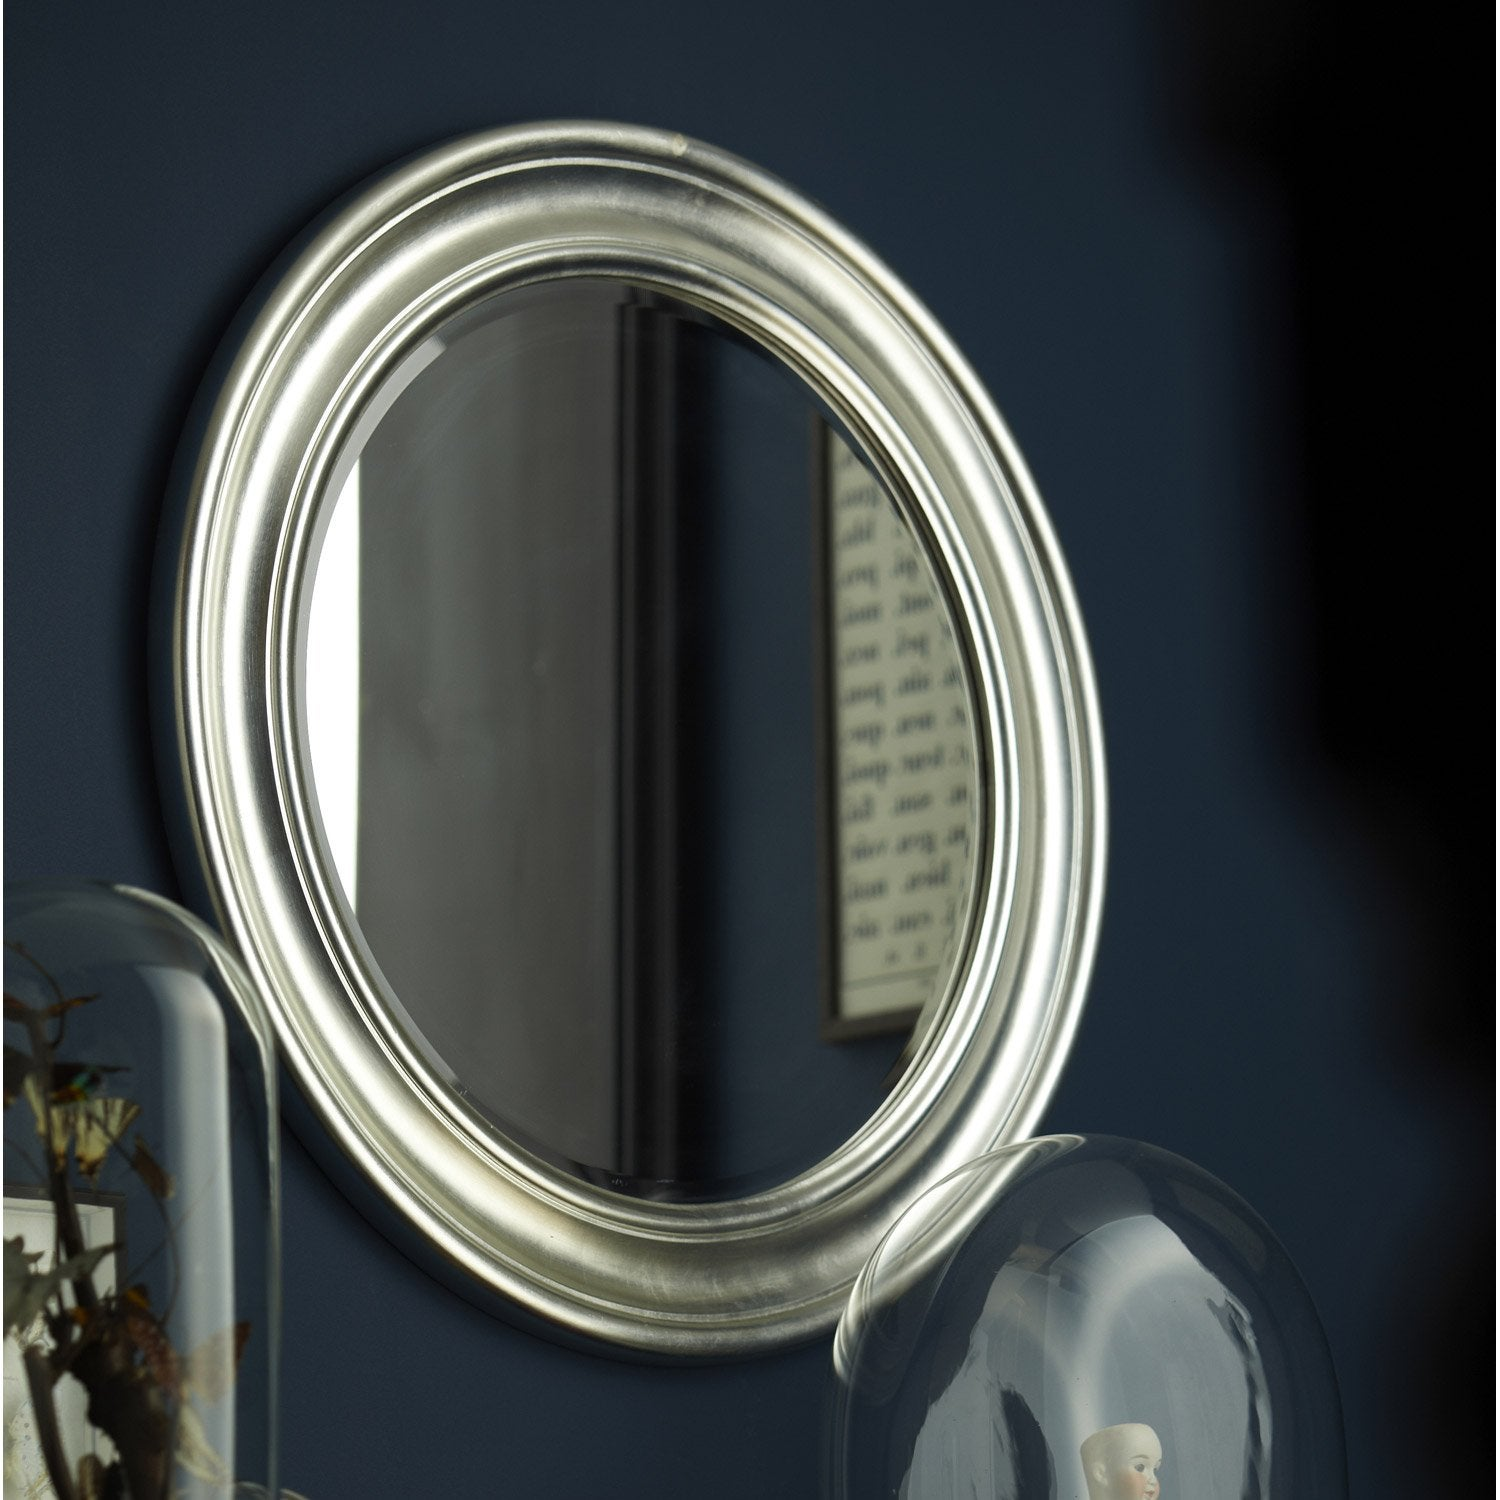 miroir daventry rond argent x cm leroy merlin. Black Bedroom Furniture Sets. Home Design Ideas